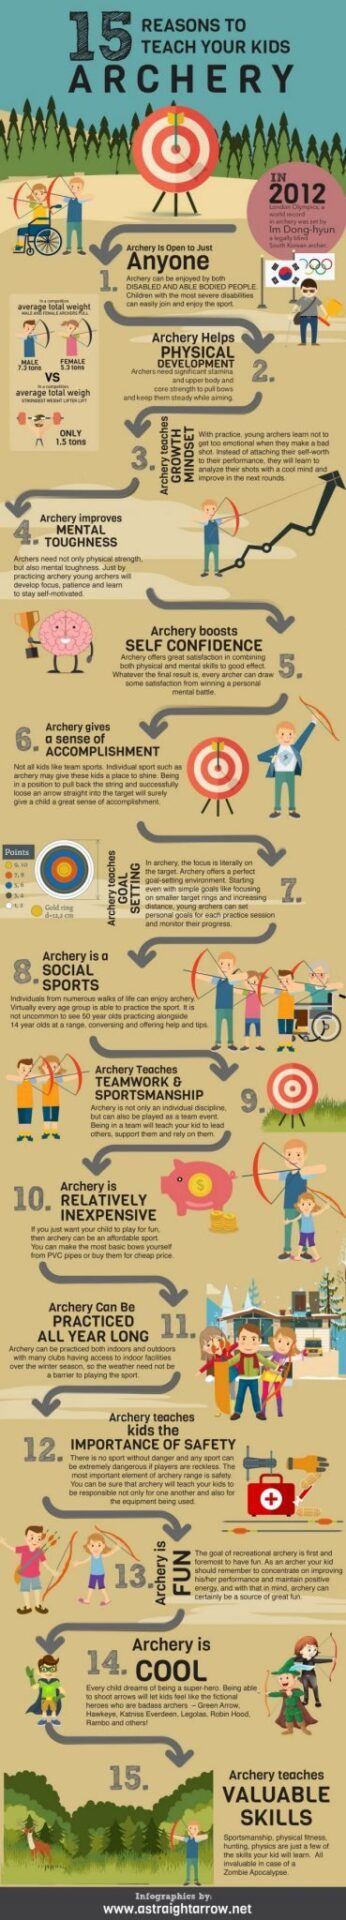 15 reasons to teach your kids archery infographic